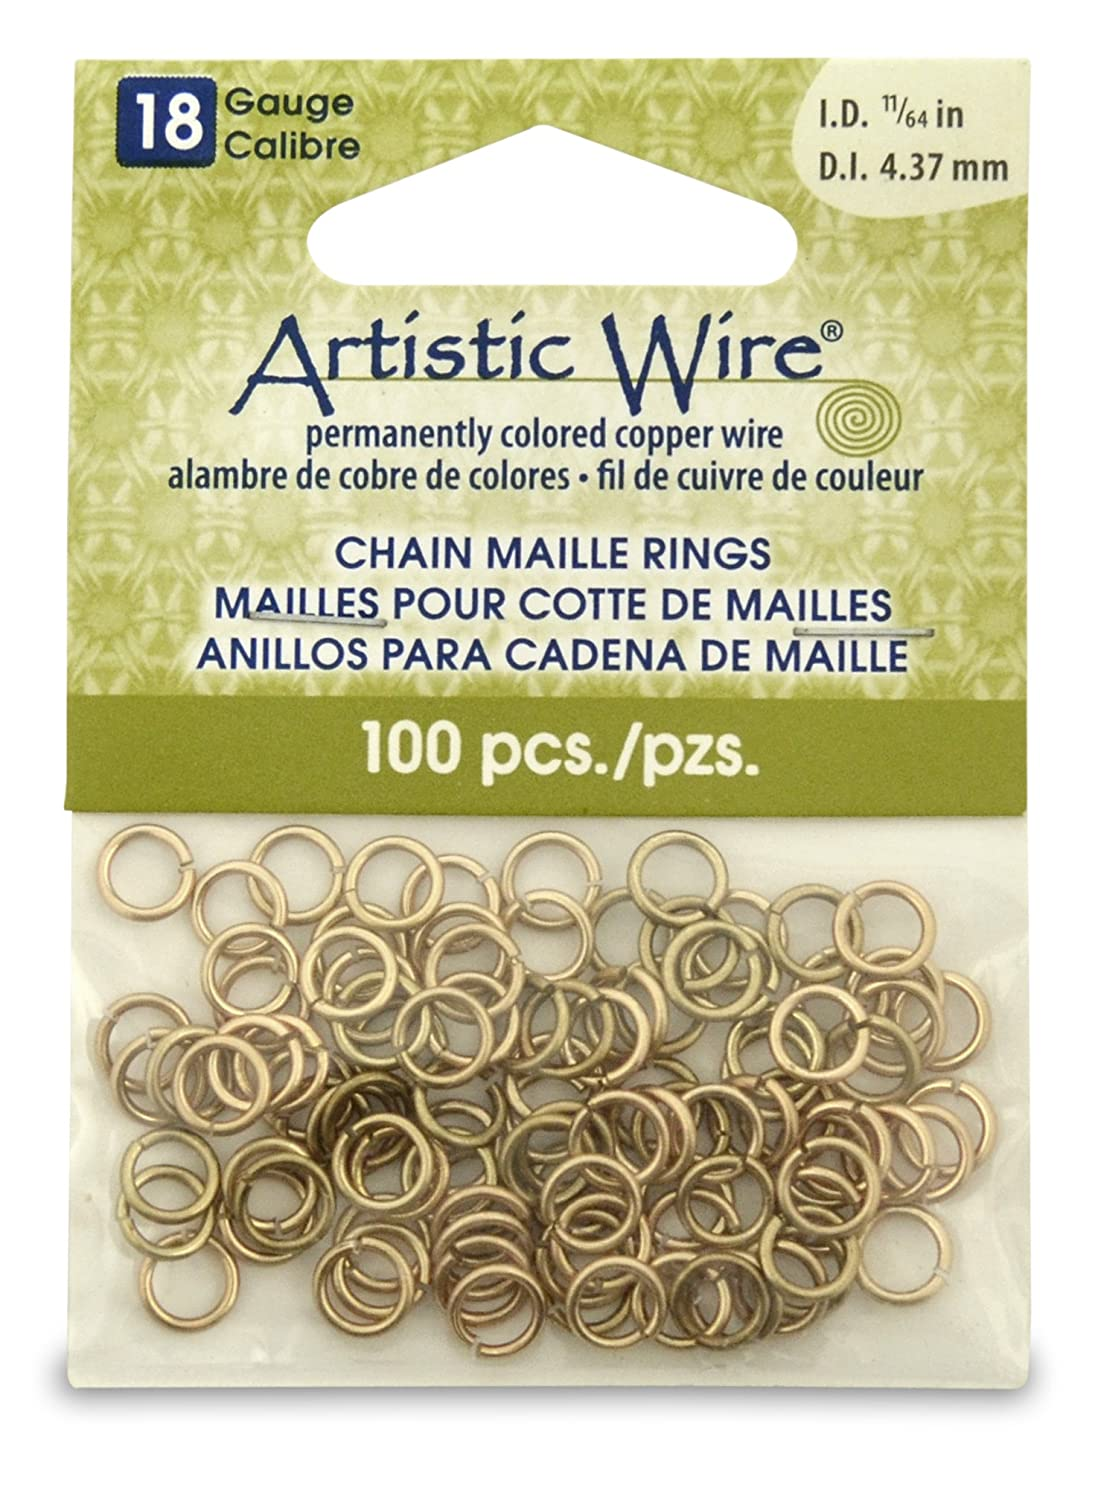 Artistic Wire Beadalon 11/64-inch 100 Piece 18-Gauge Non-Tarnish Chain Maille Rings, Brass A314-18-NTB-07